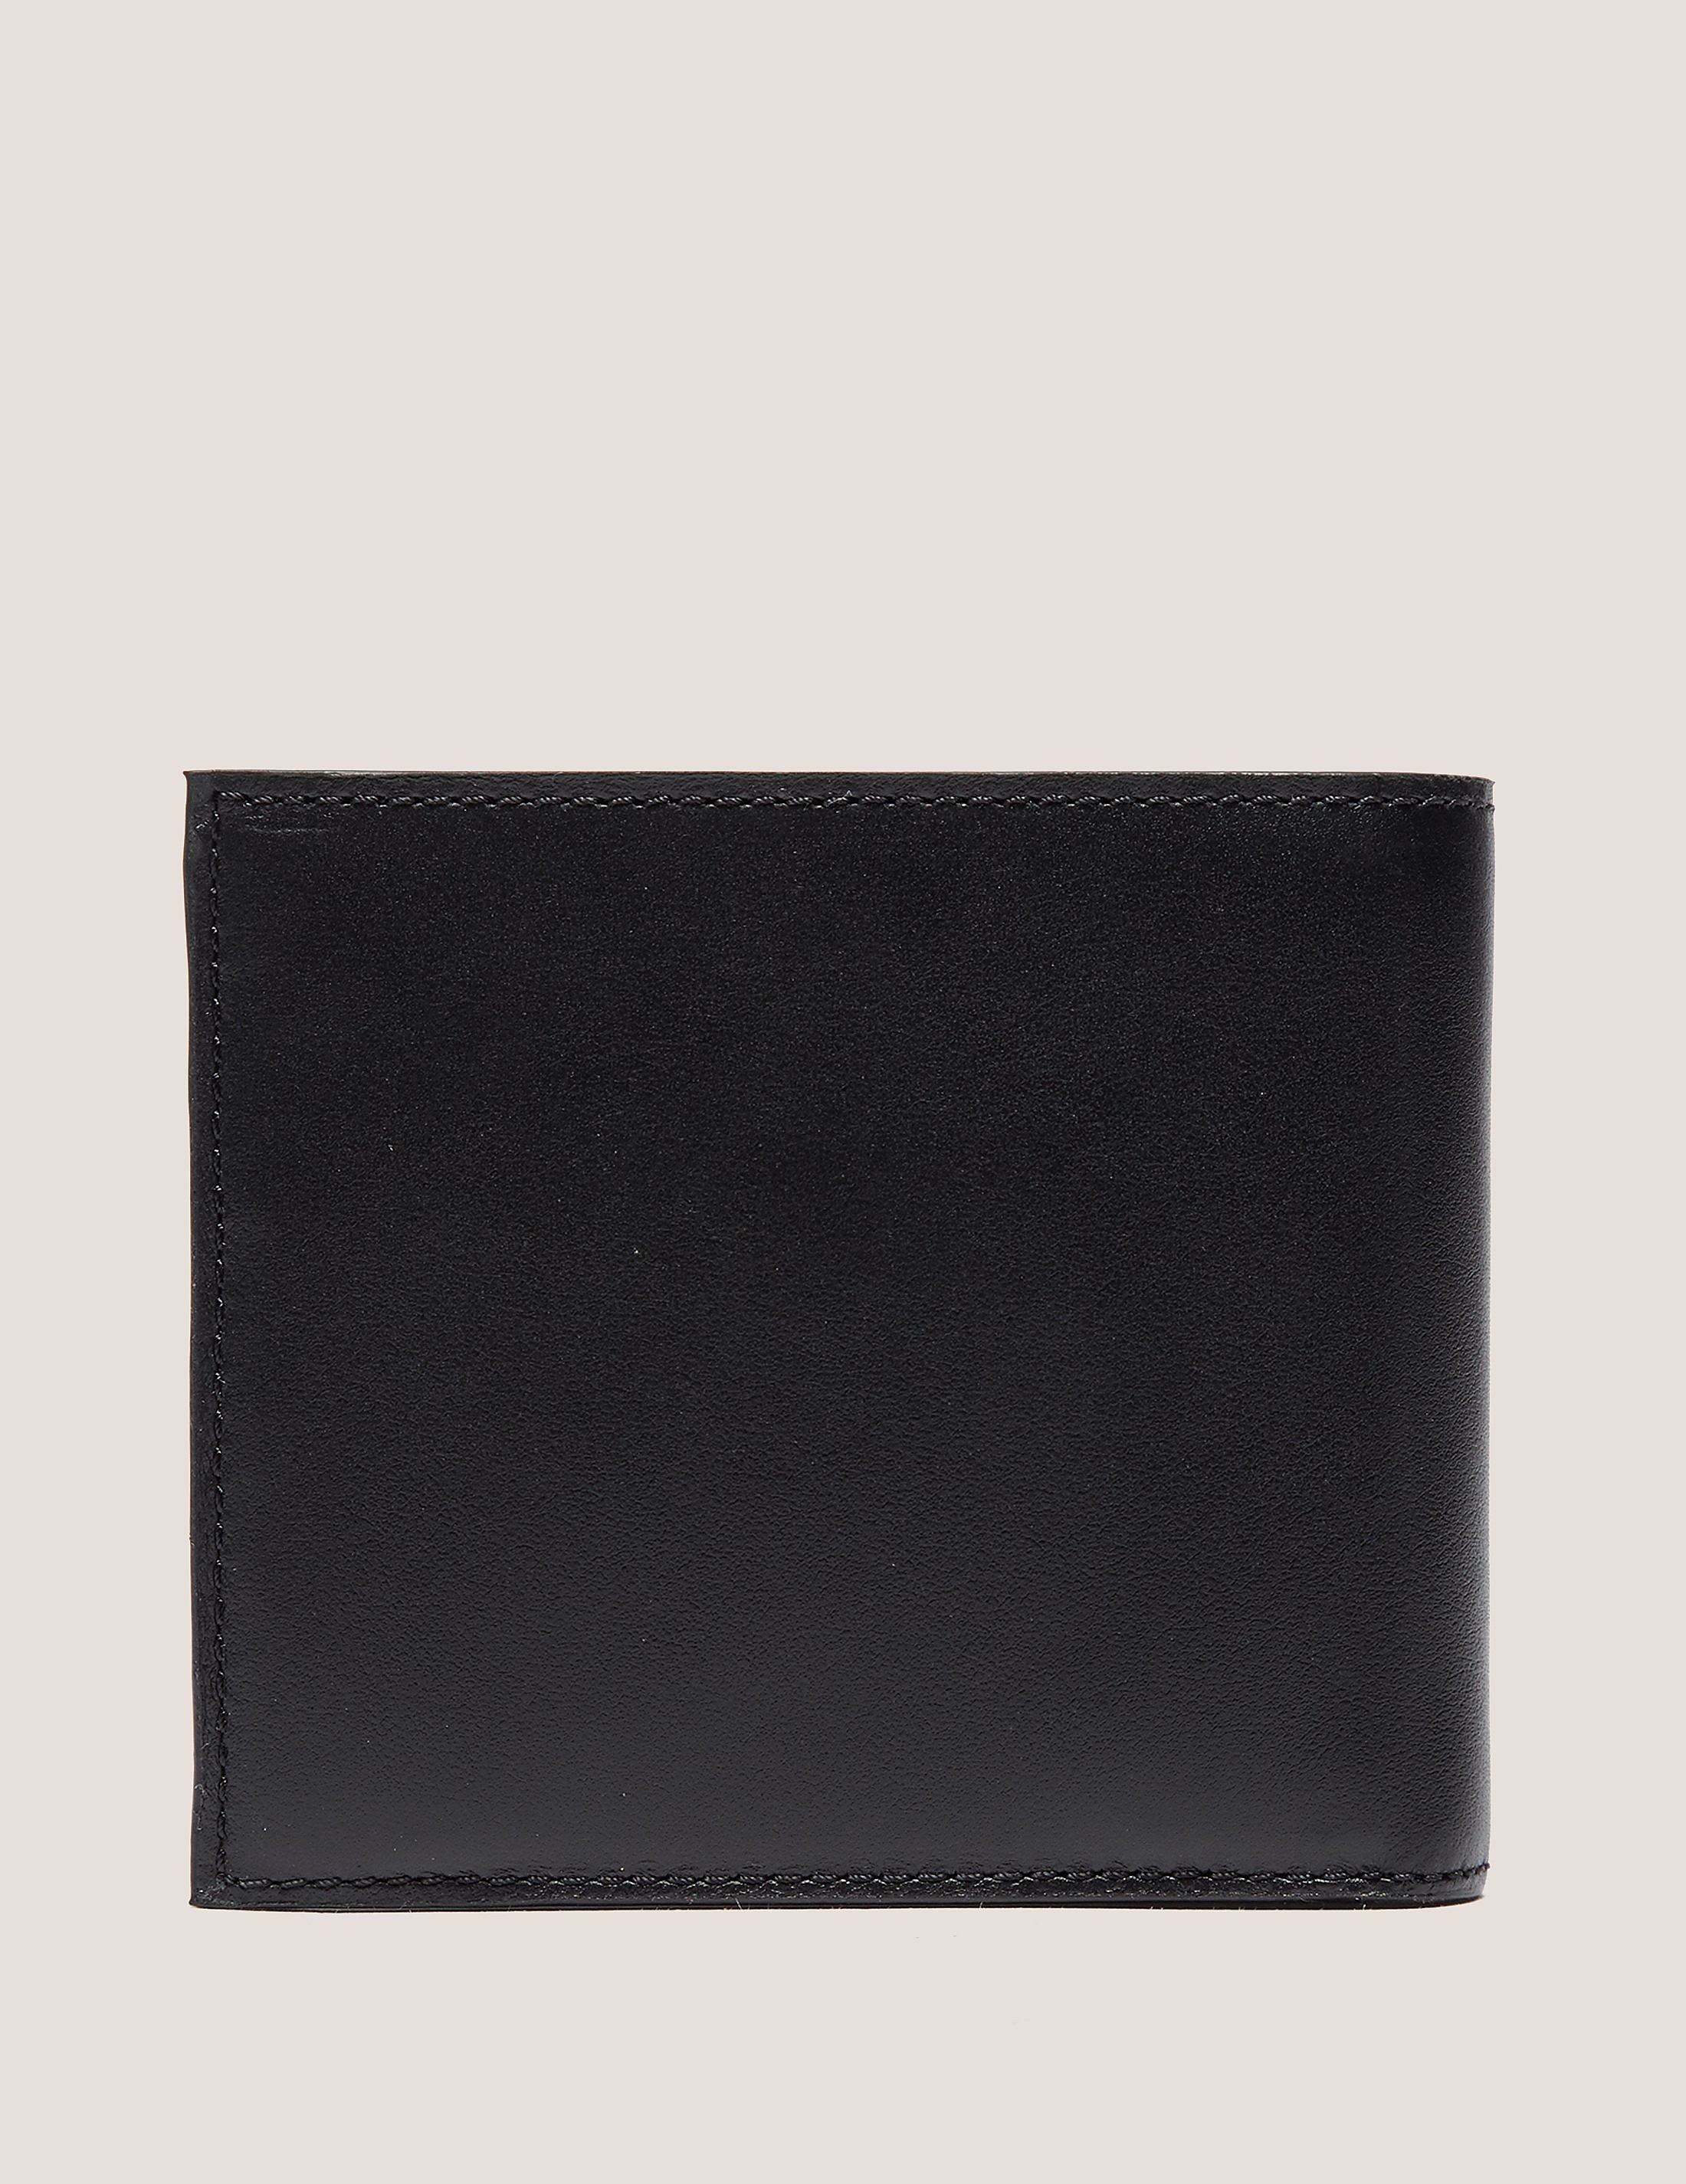 Paul Smith Contrast Piping Billfold & Coin Wallet